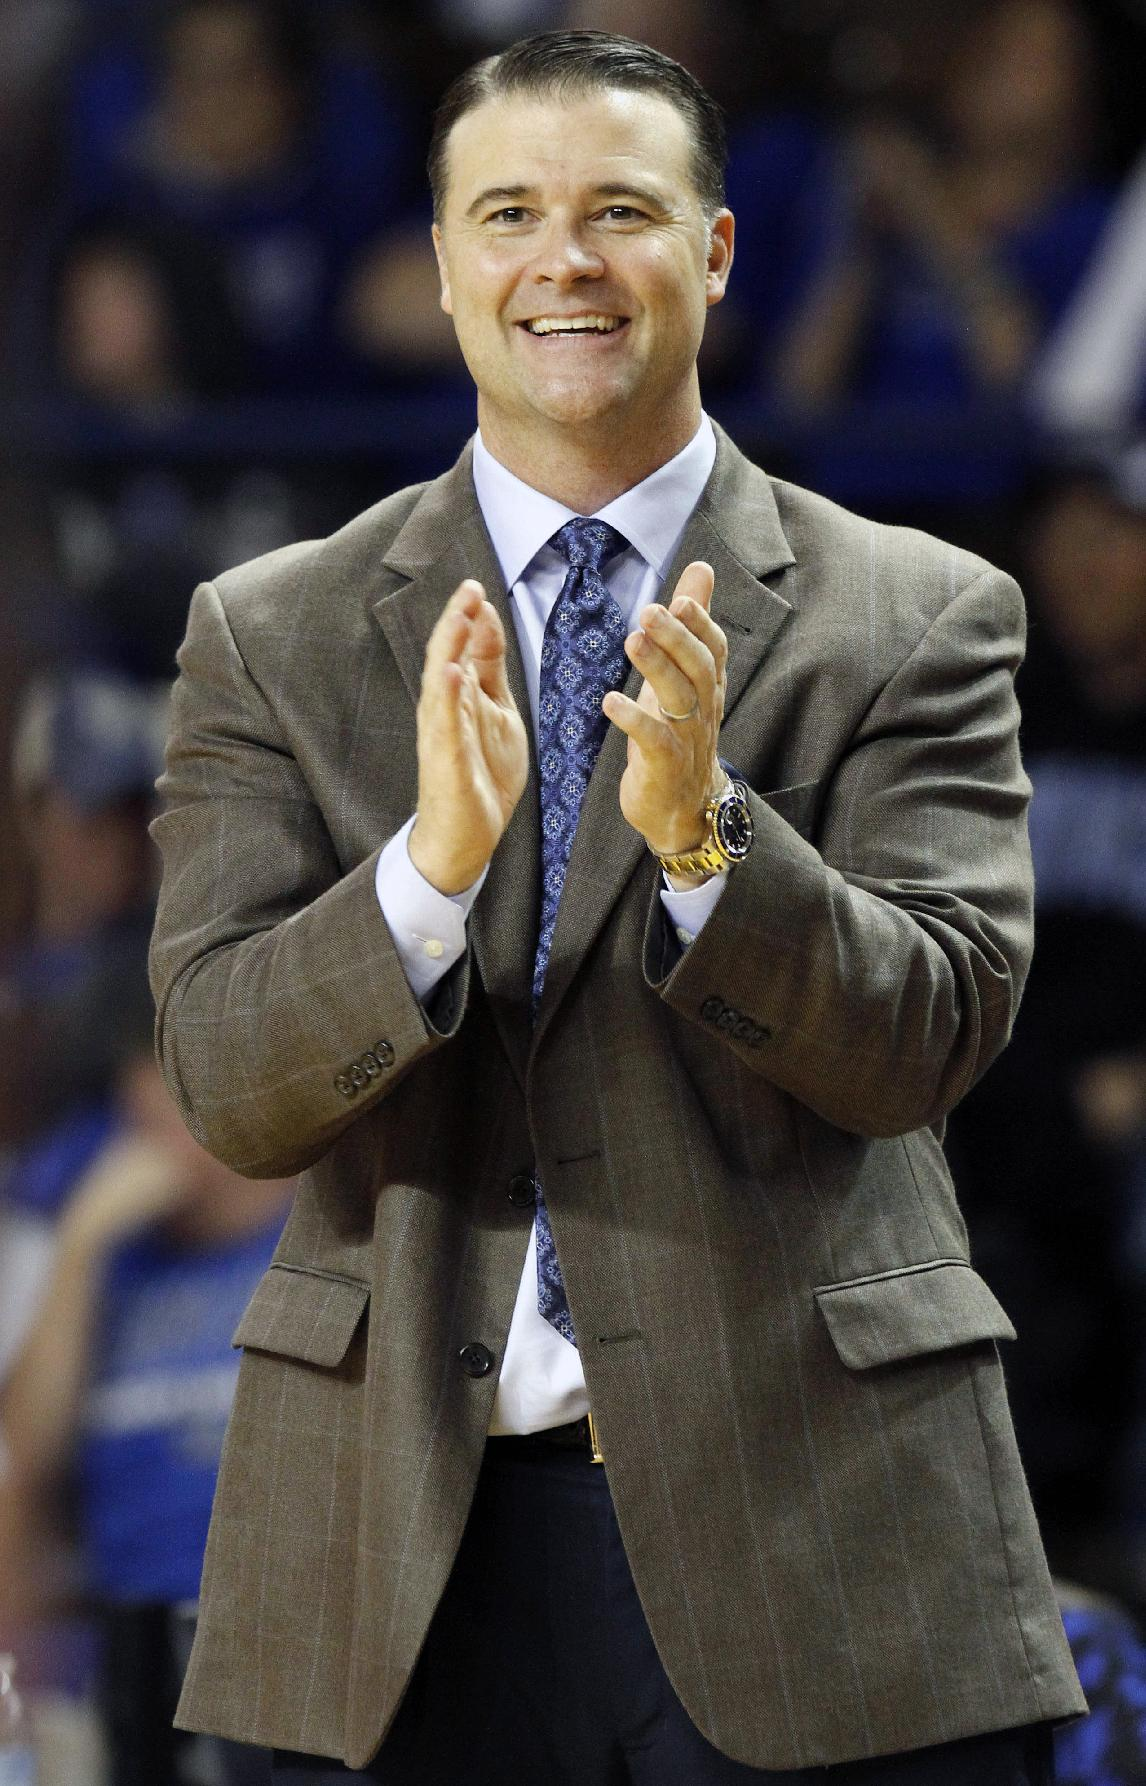 Kentucky head coach Matthew Mitchell applauds his team during the second half of an NCAA college basketball exhibition game, Sunday, Nov. 3, 2013, in Lexington, Ky